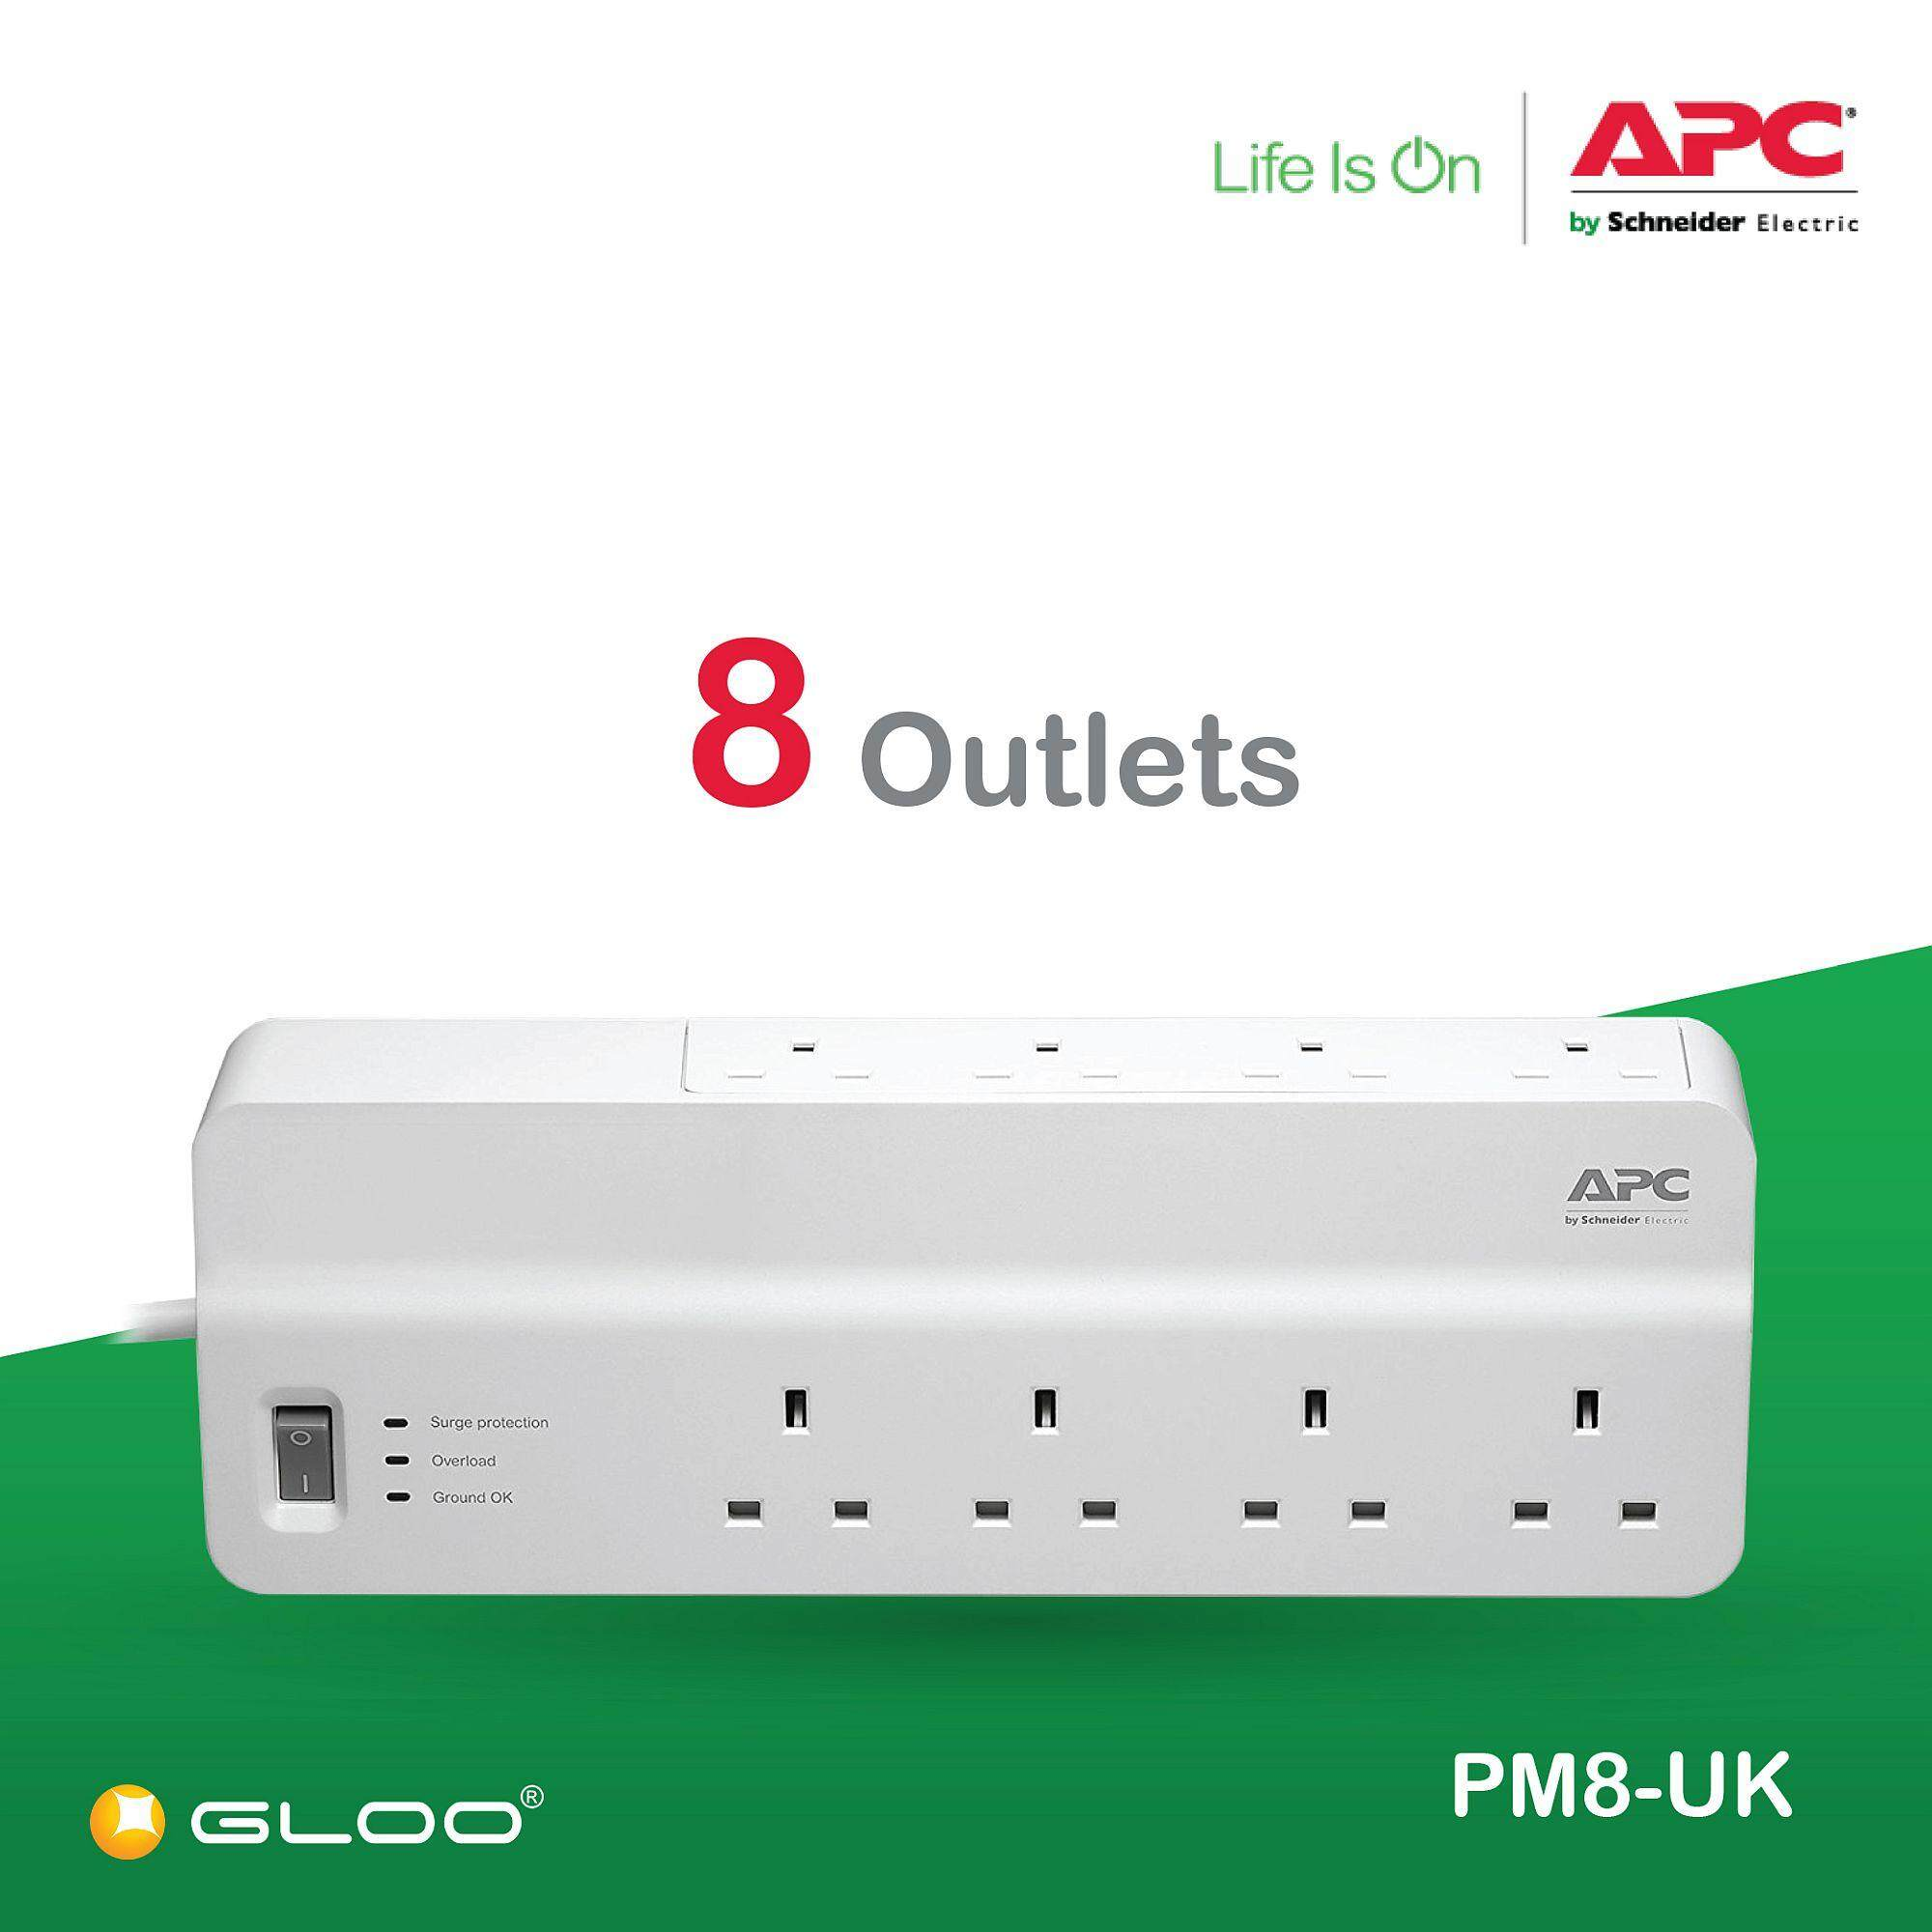 APC Essential SurgeArrest 8 outlets 230V UK PM8-UK - White [Free RM20 BHP Petrol Voucher from 29 Aug - 16 Sept 2019]